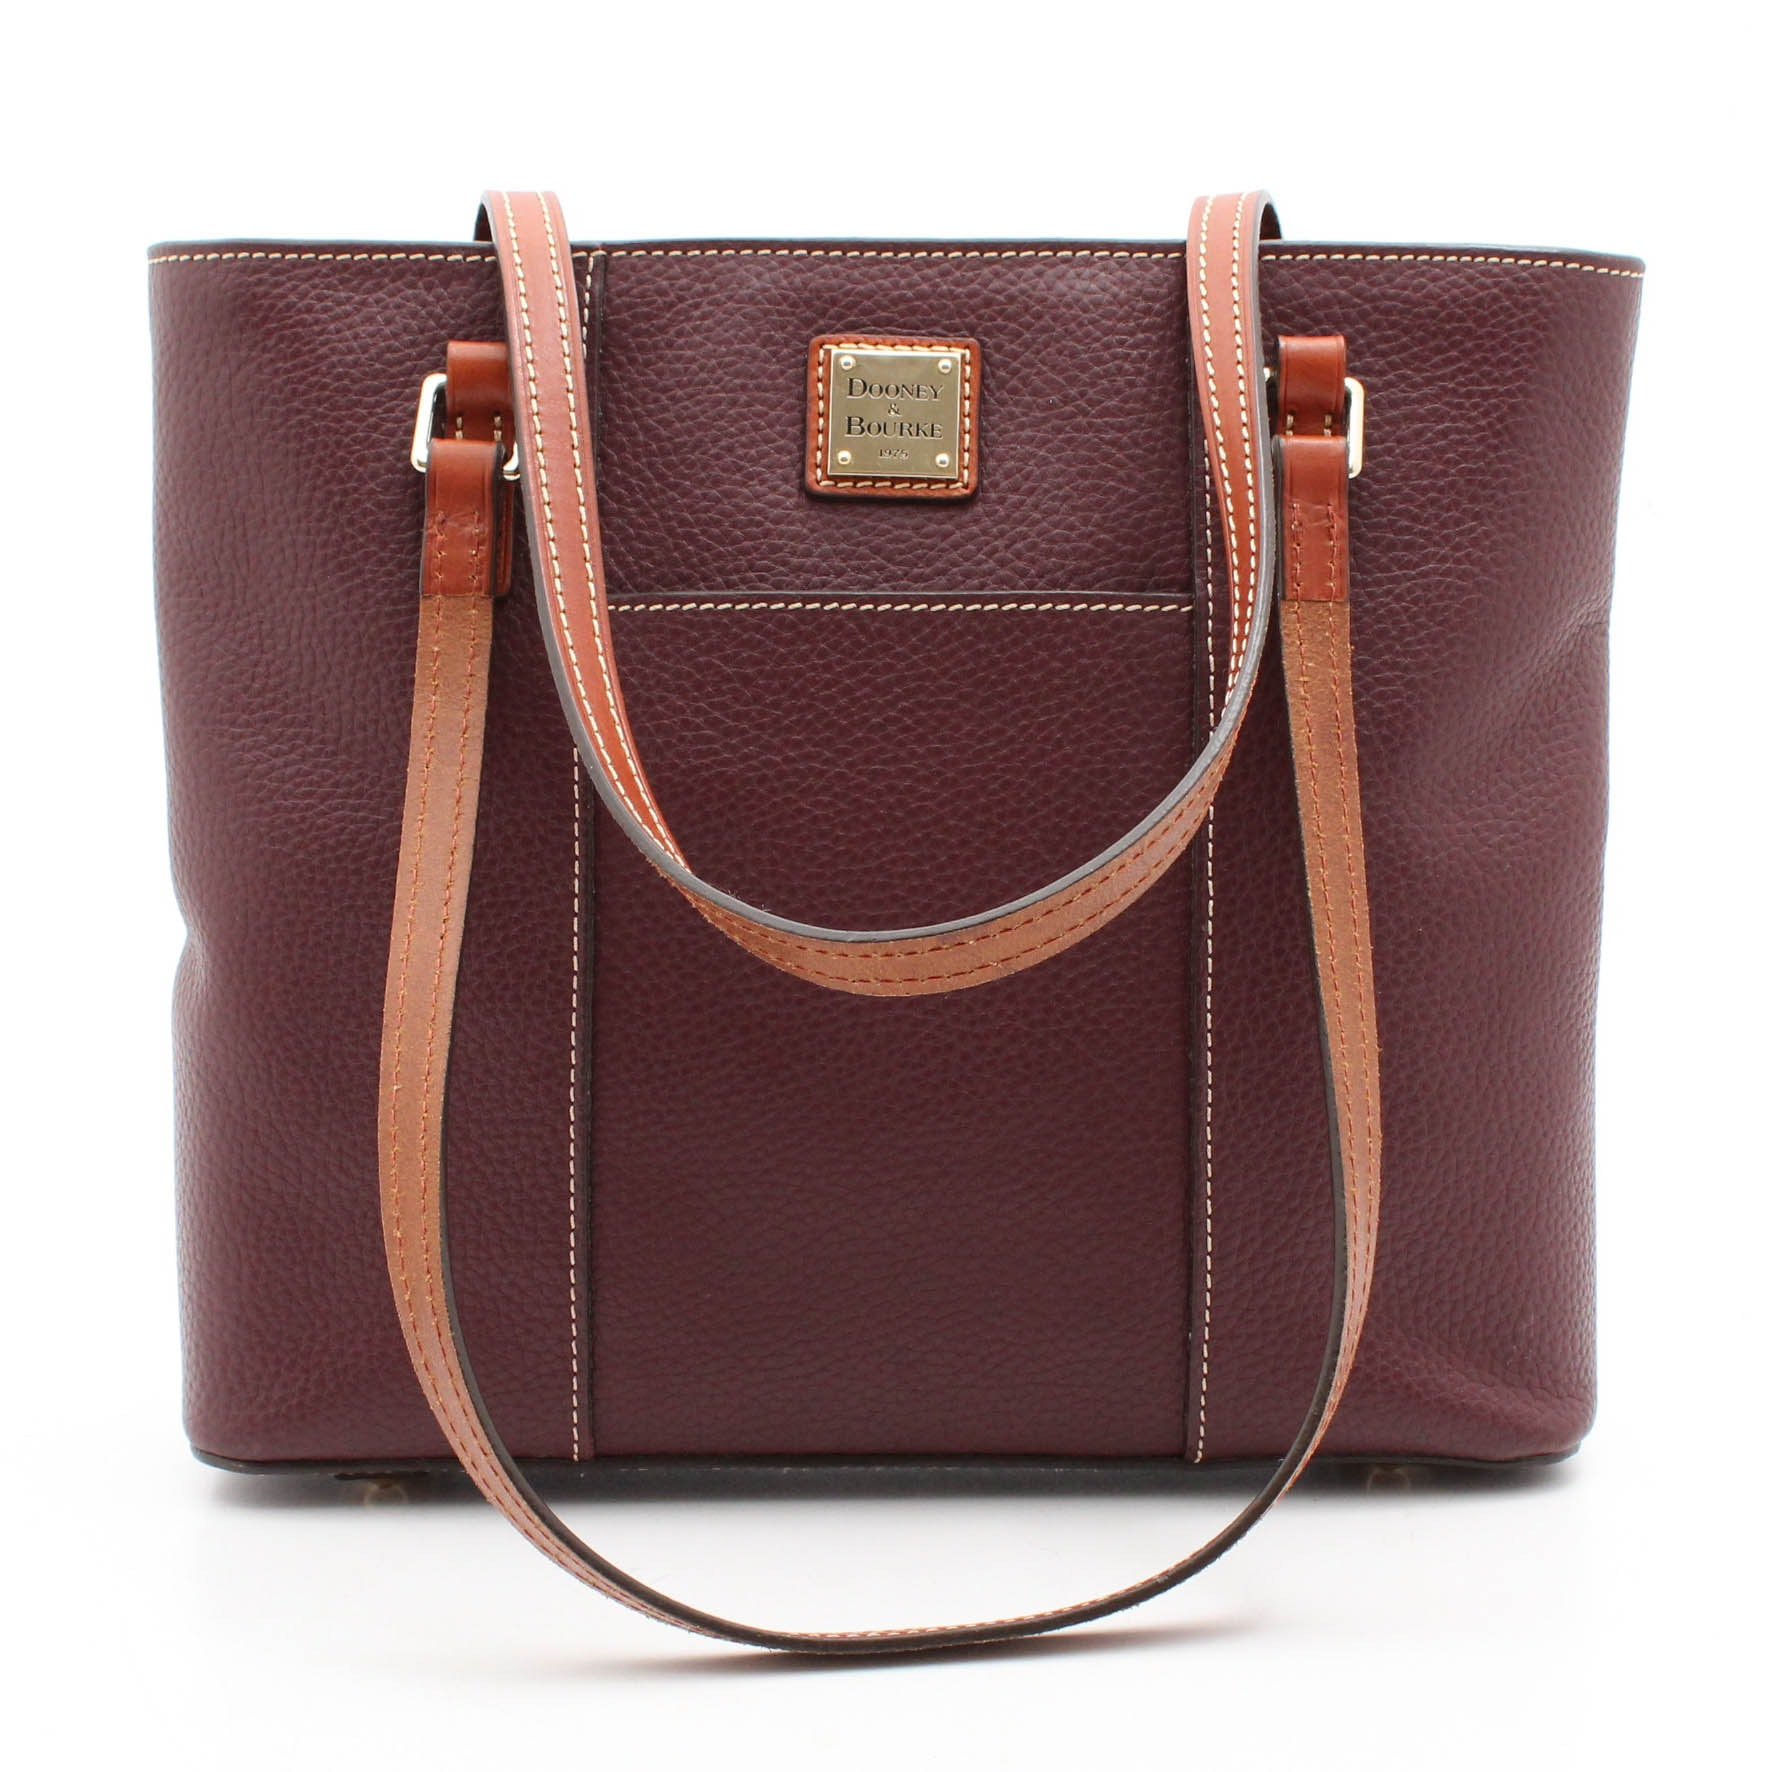 Dooney & Bourke Burgundy Pebbled and Cognac Leather Tote